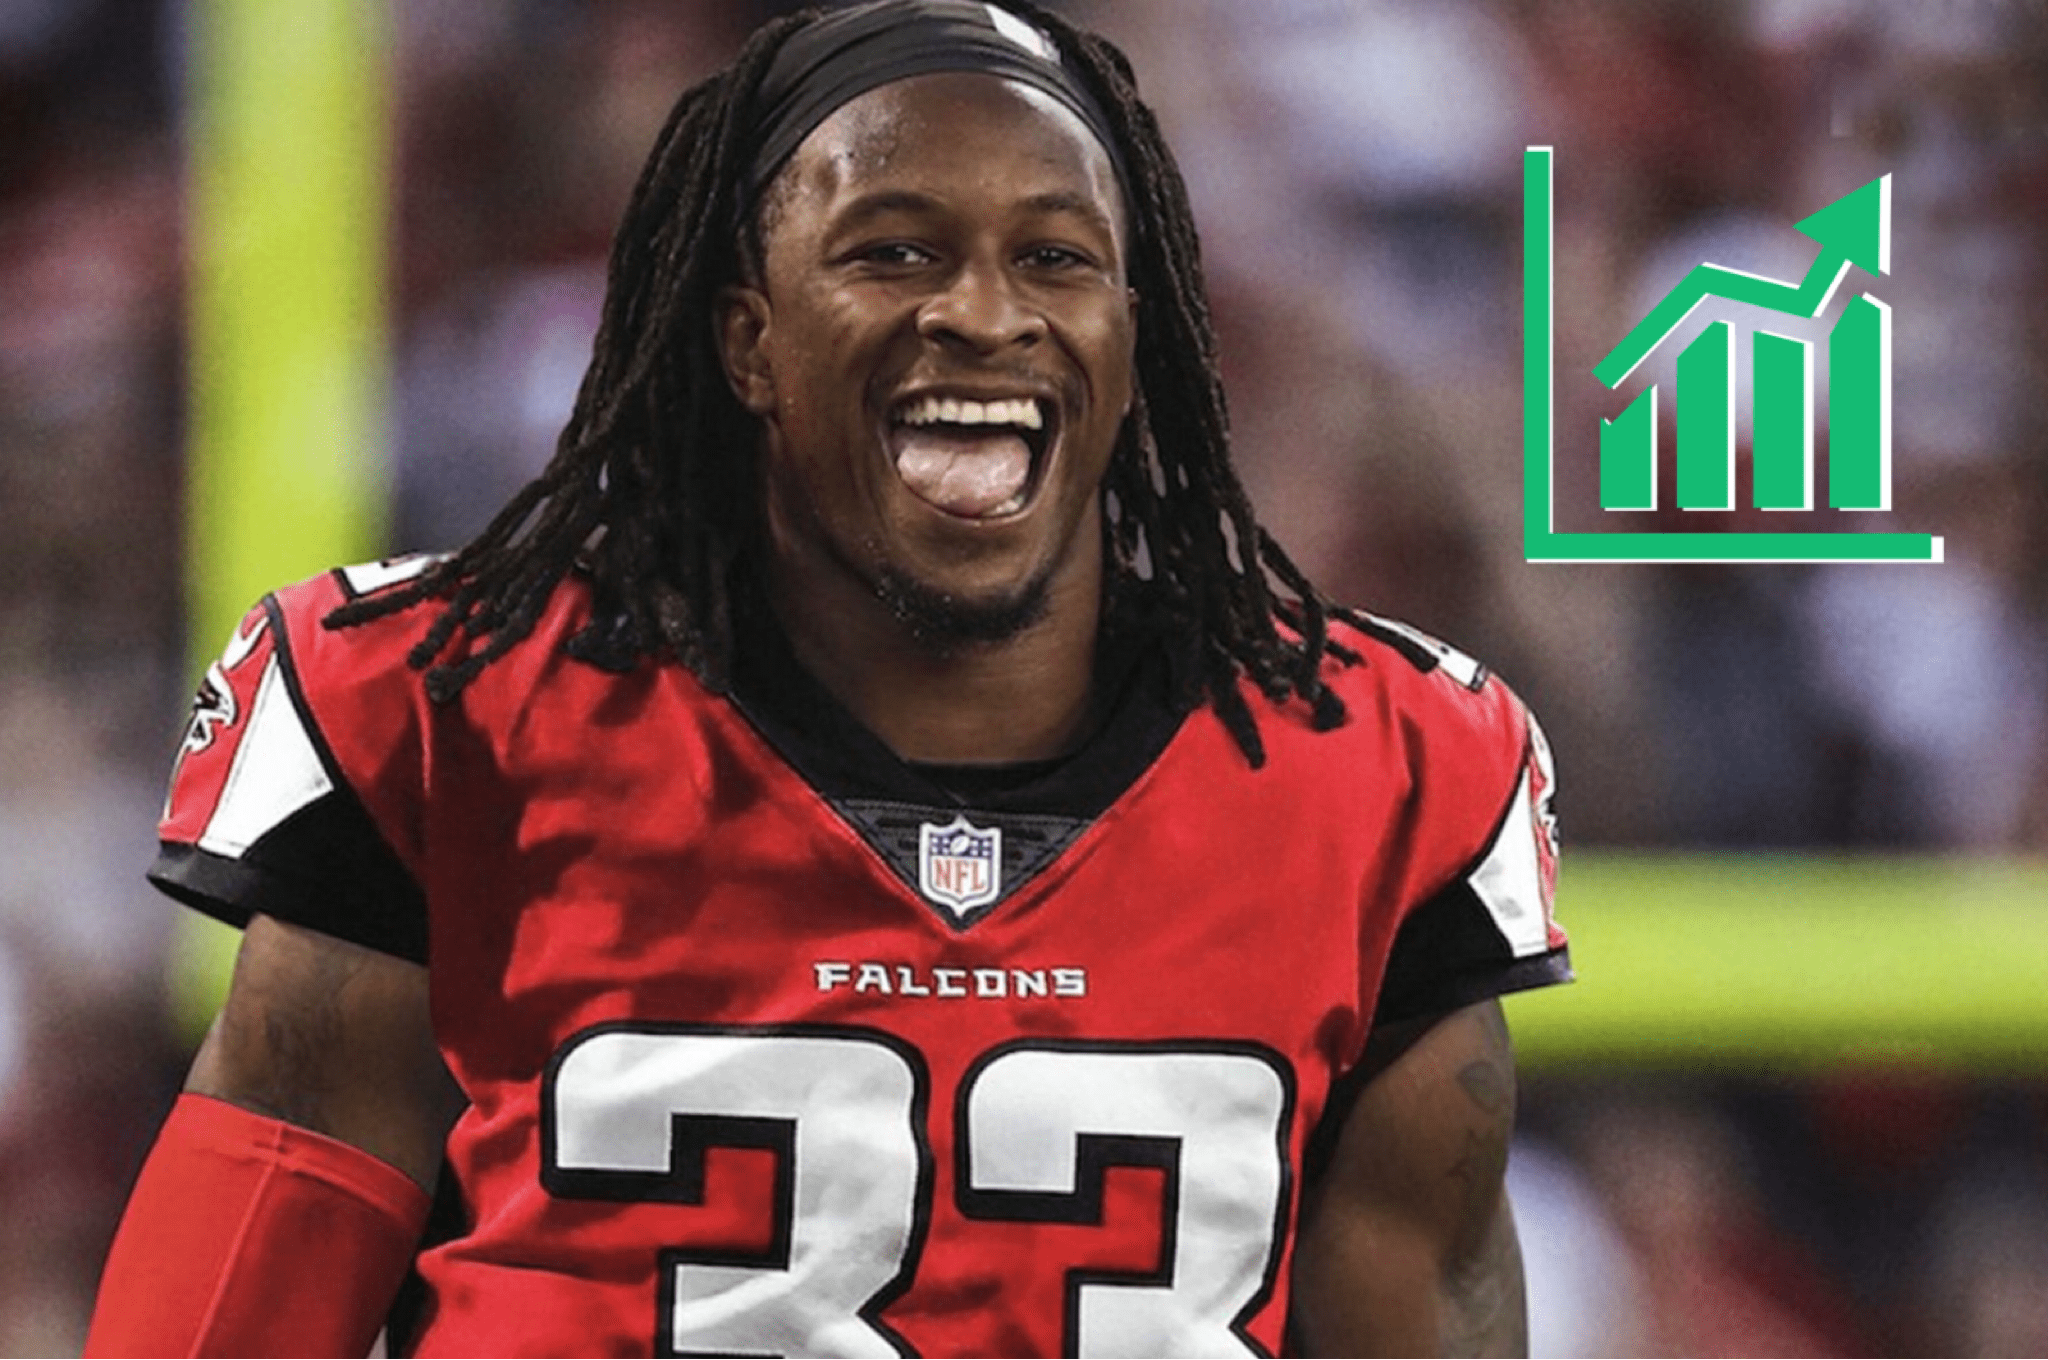 Todd Gurley S Fantasy Value With Falcons In 2020 Roto Street Journal